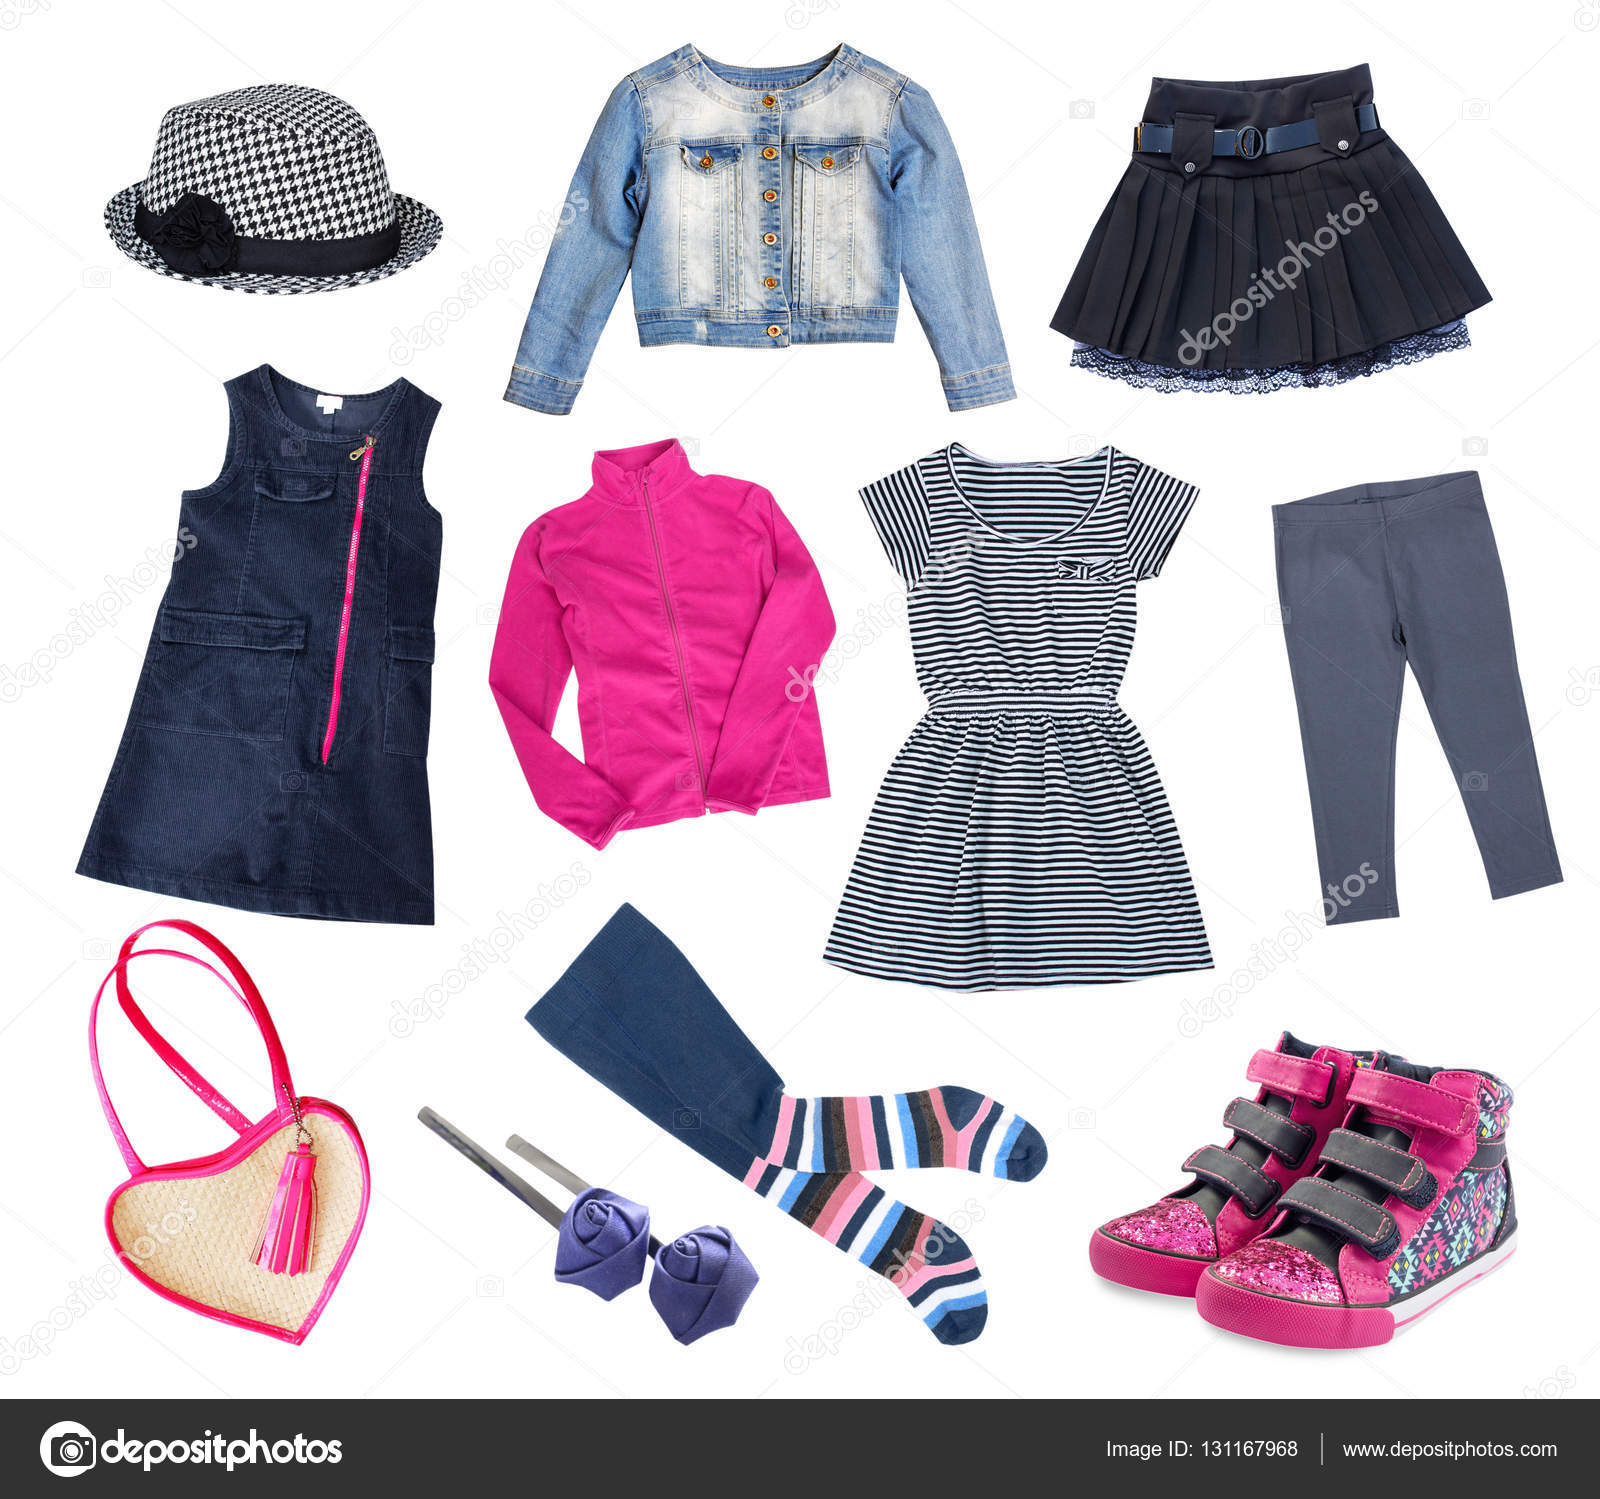 61c0507a2 Fashion kid girl clothes set isolated on white.Child girl modern bright  clothing collage.